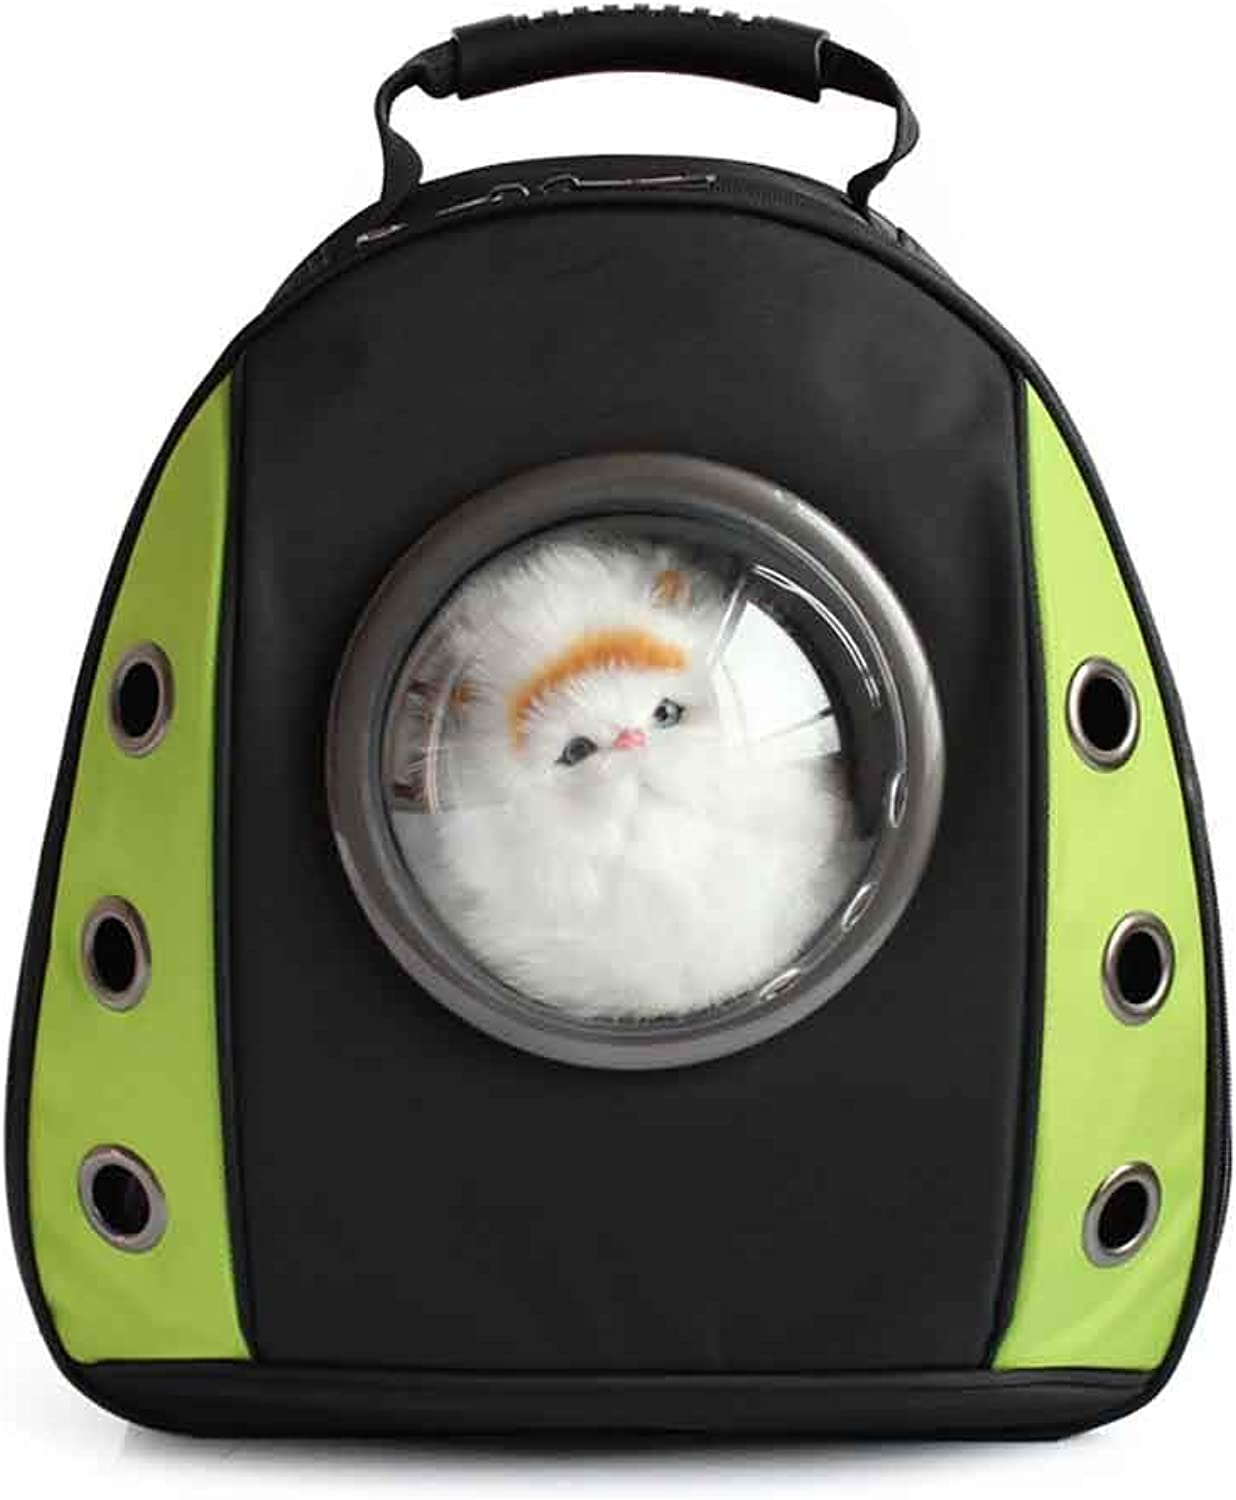 ACLBB Pet transparent backpack, travel backpack, portable space capsule design, cat and puppy,Green